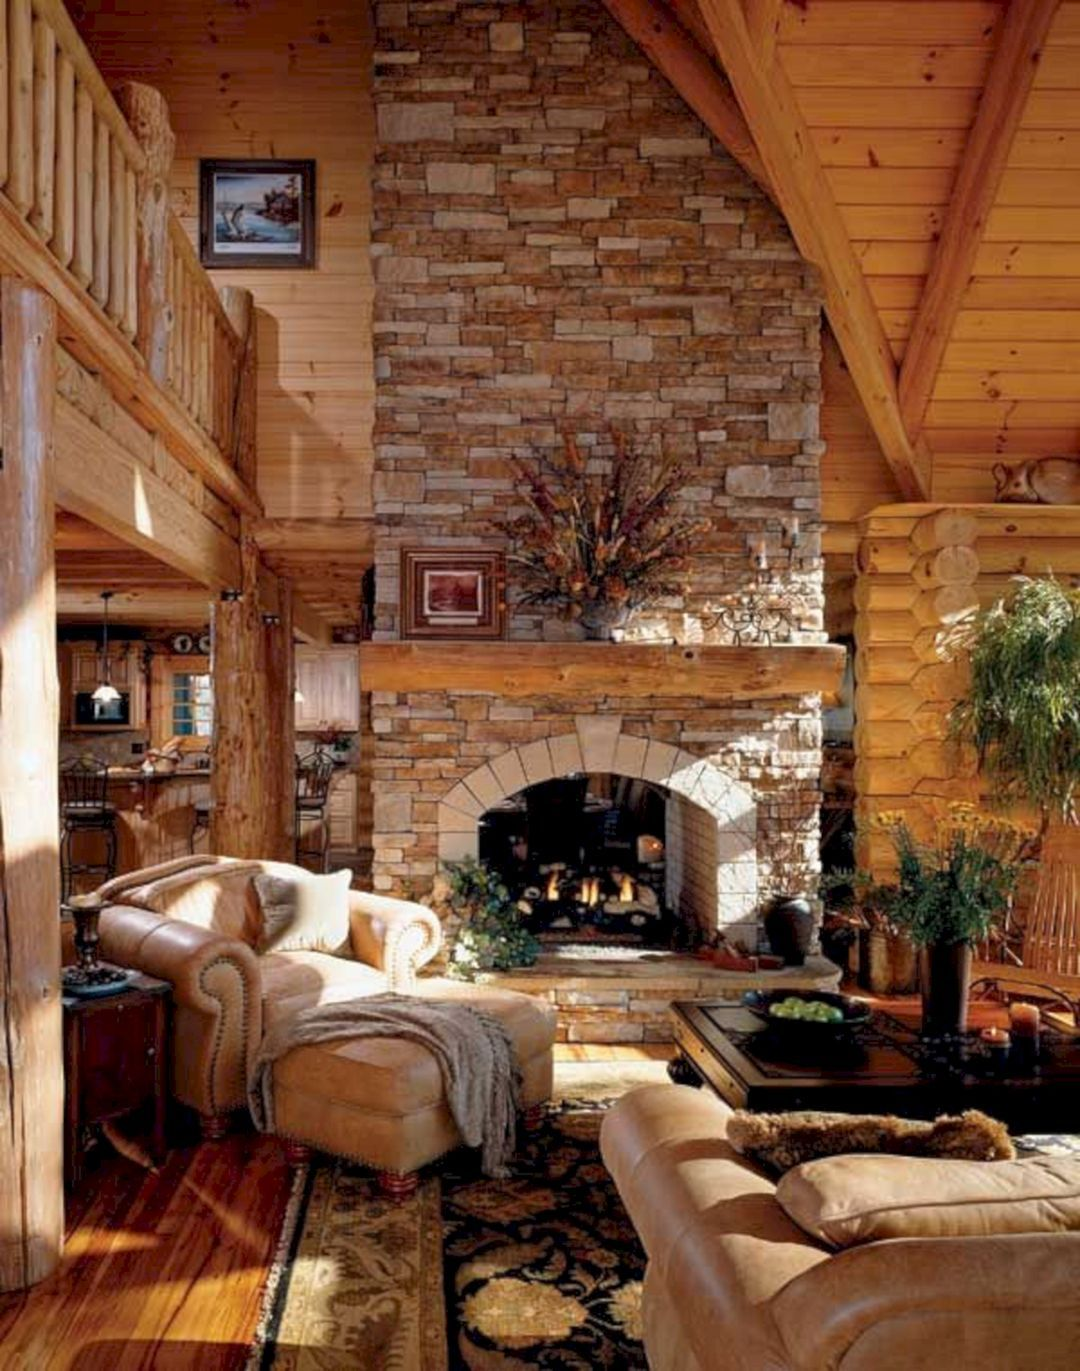 49 superb cozy and rustic cabin style living rooms ideas living